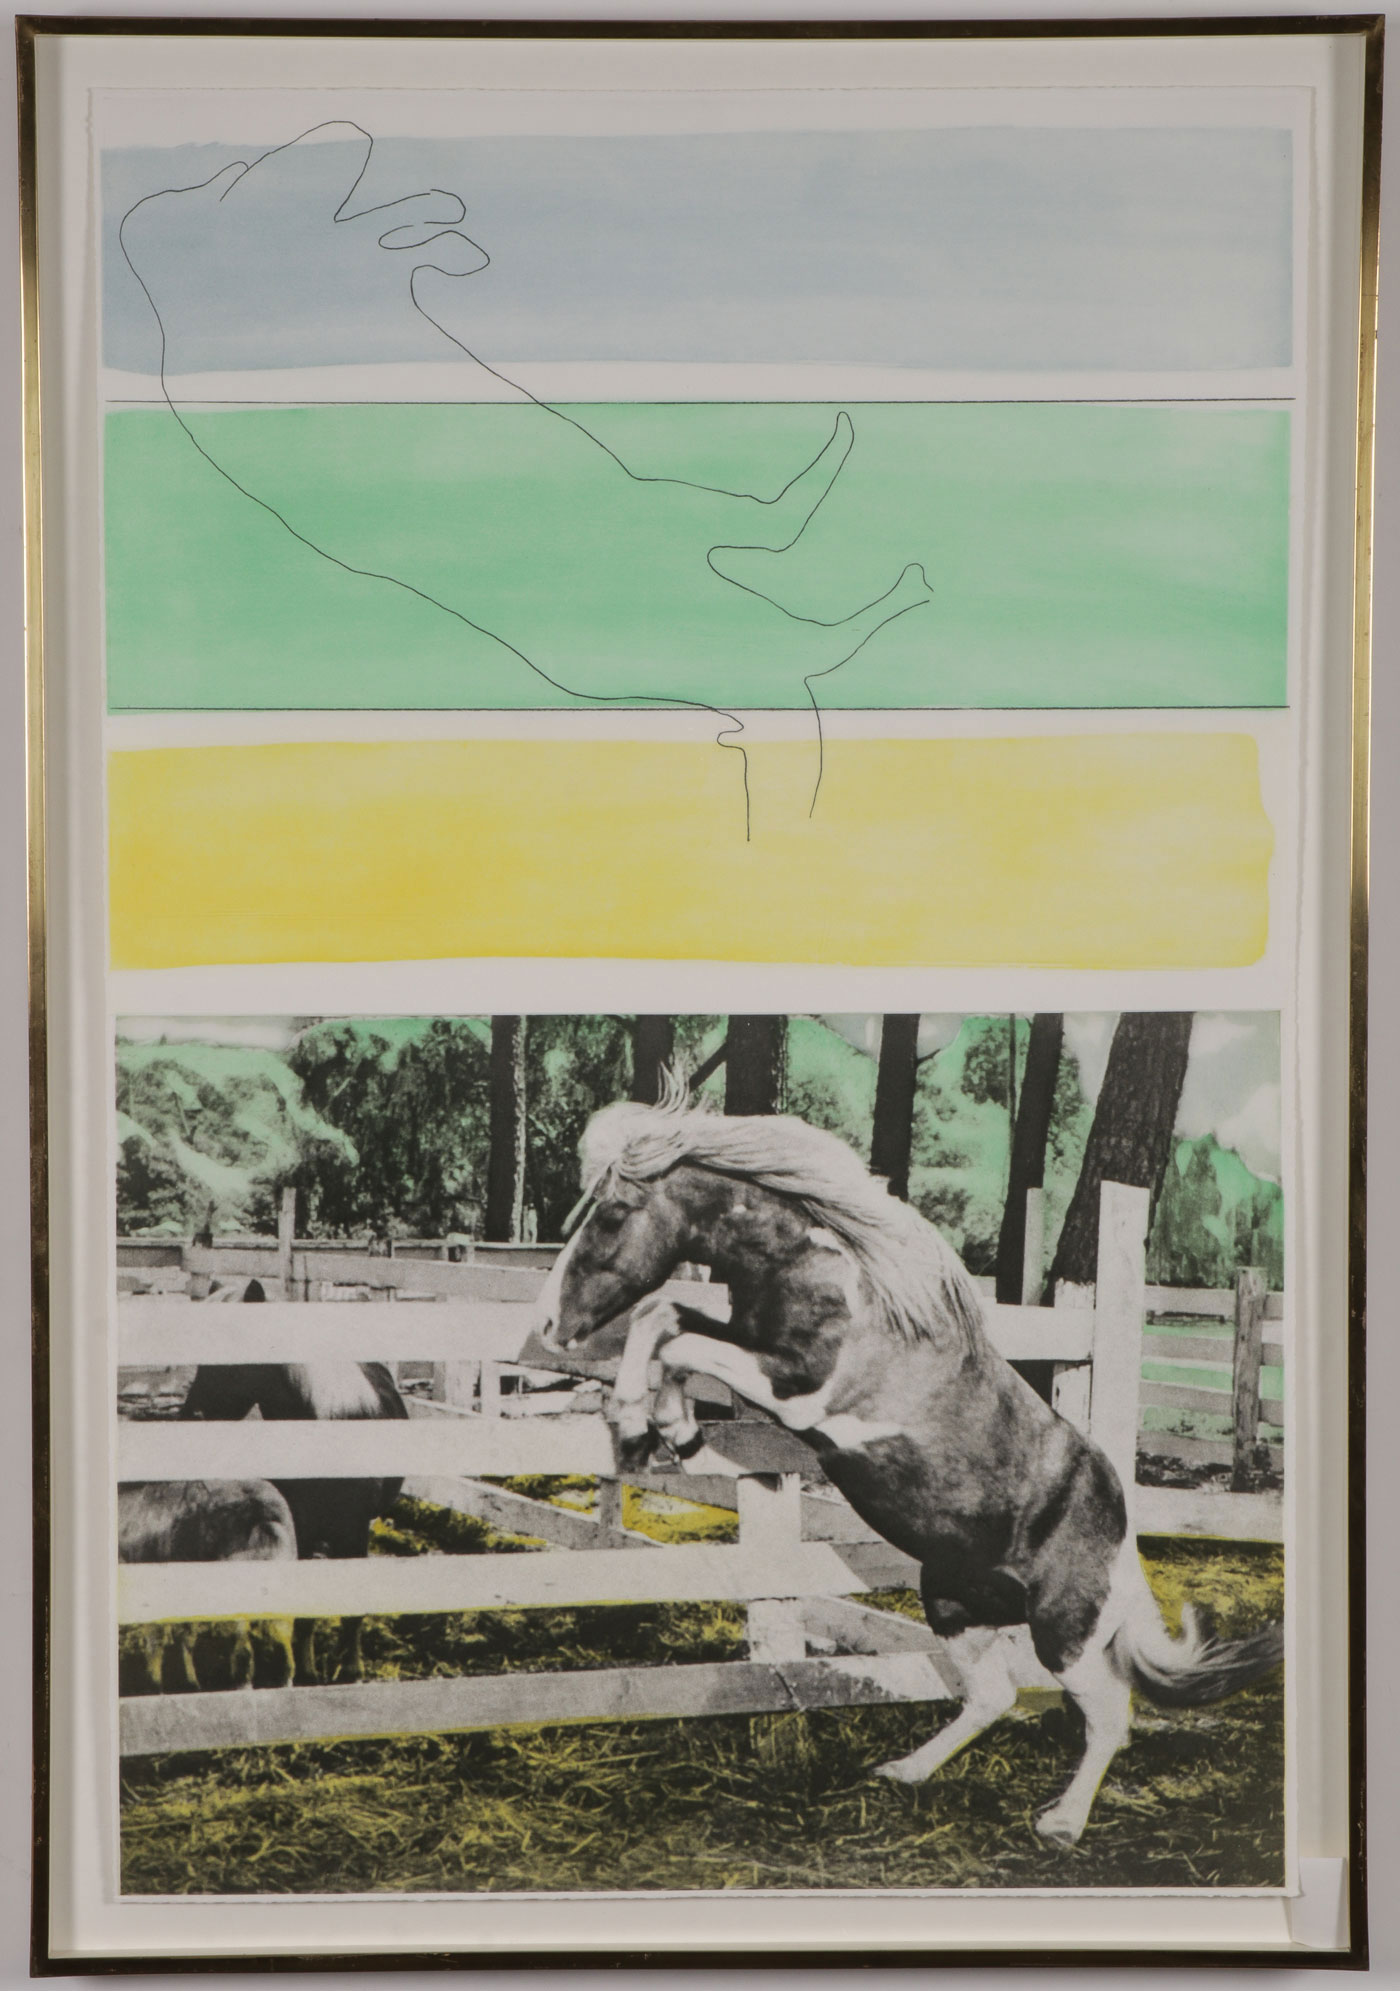 JOHN BALDESSARI SIGNED WORK - Image 2 of 4